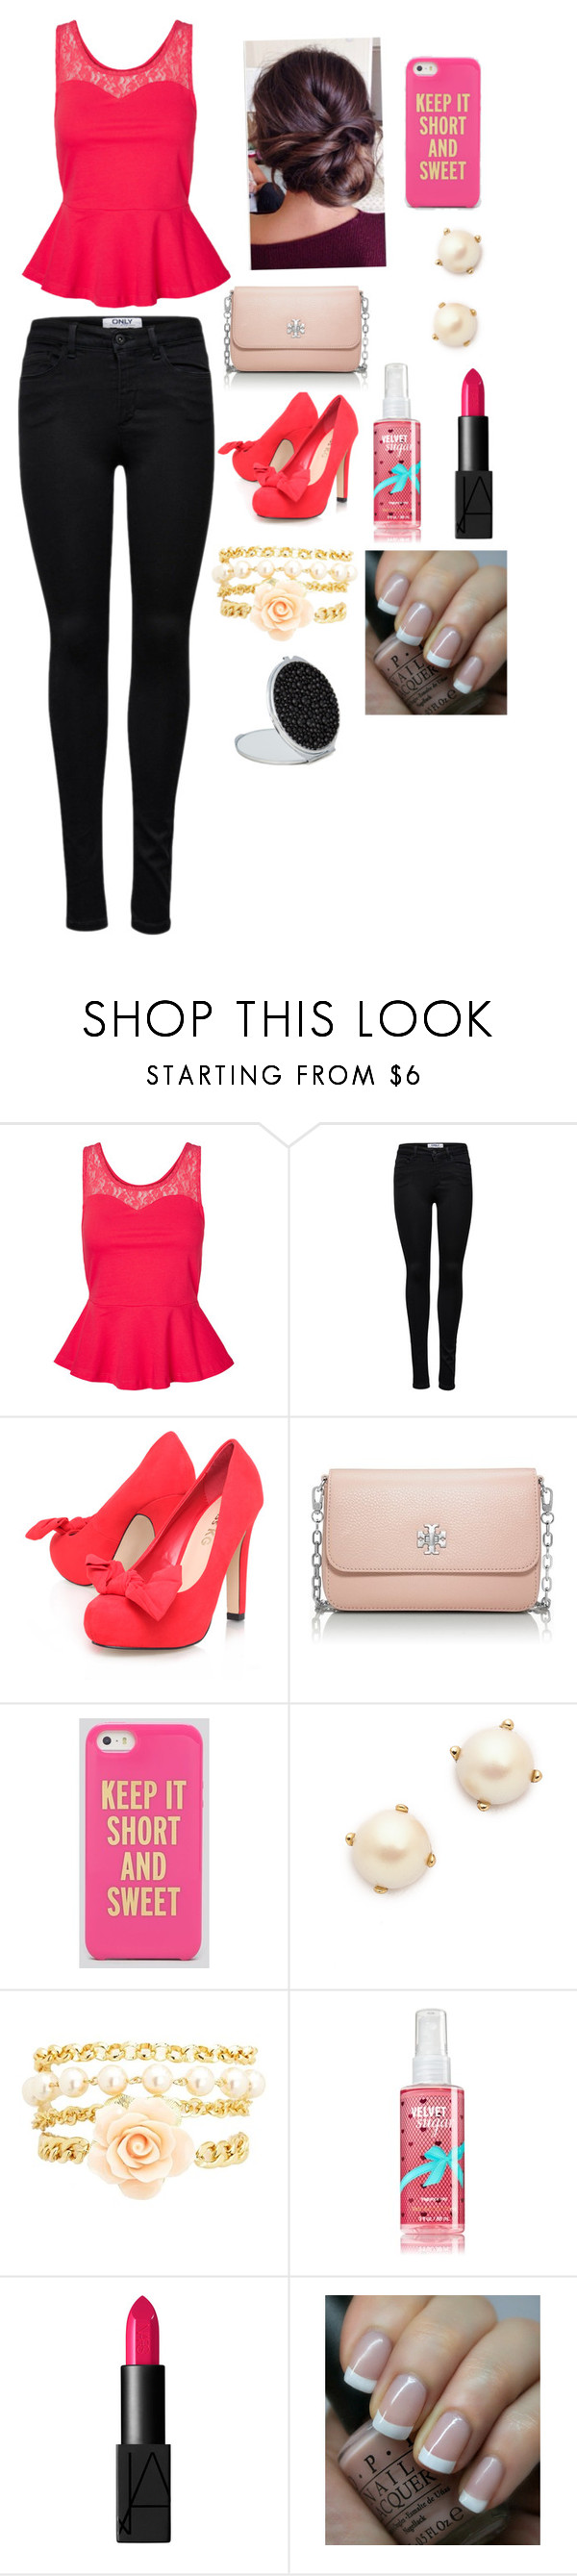 """""""It's Your Moment."""" by uniqu3ly-m3 ❤ liked on Polyvore featuring Vero Moda, ONLY, Miss KG, Tory Burch, Kate Spade, Charlotte Russe, NARS Cosmetics and OPI"""